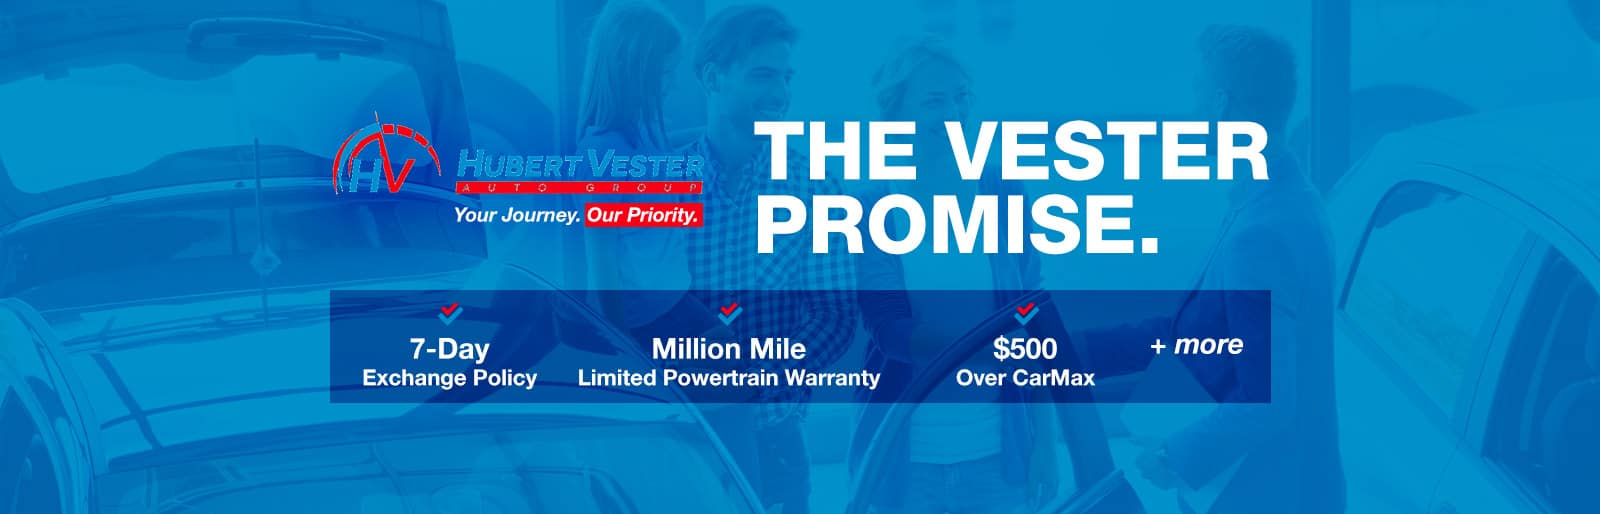 The Vester Promise